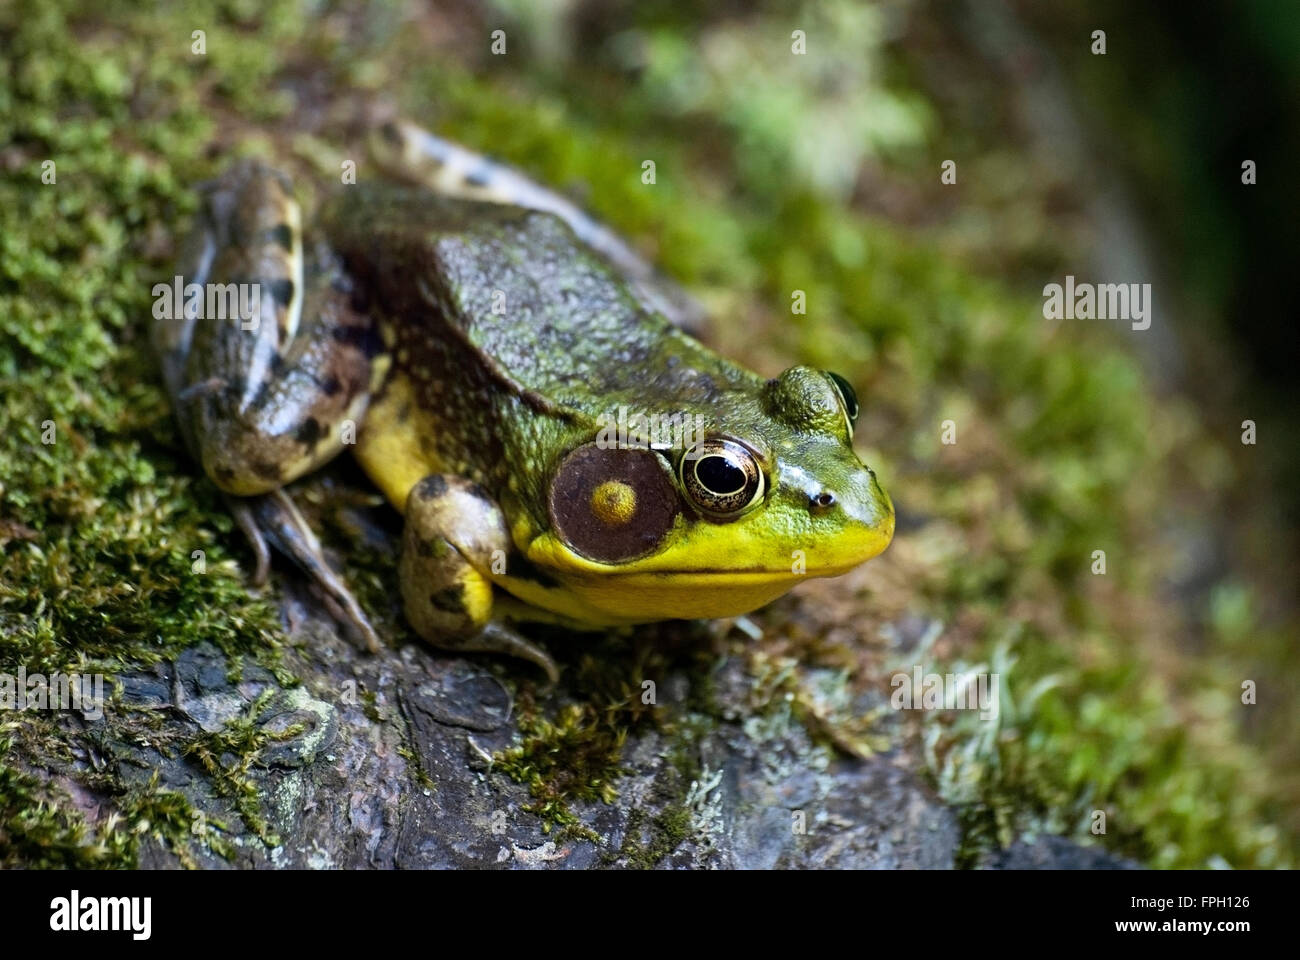 Green frog sitting on s rock with moss - Stock Image